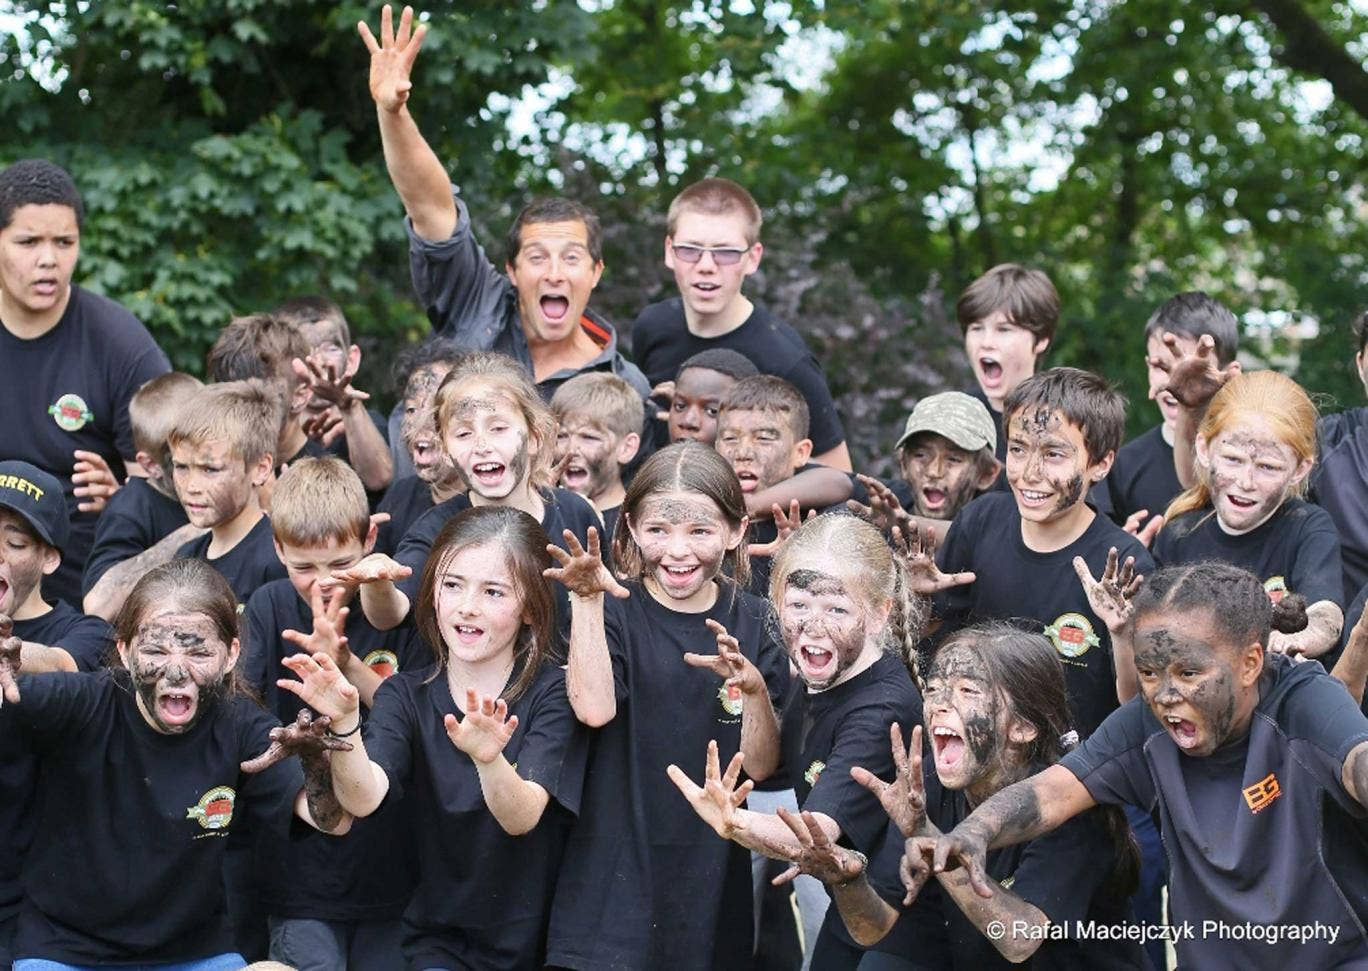 Children can get a sense of adventure at the Bear Grylls Survival Academy